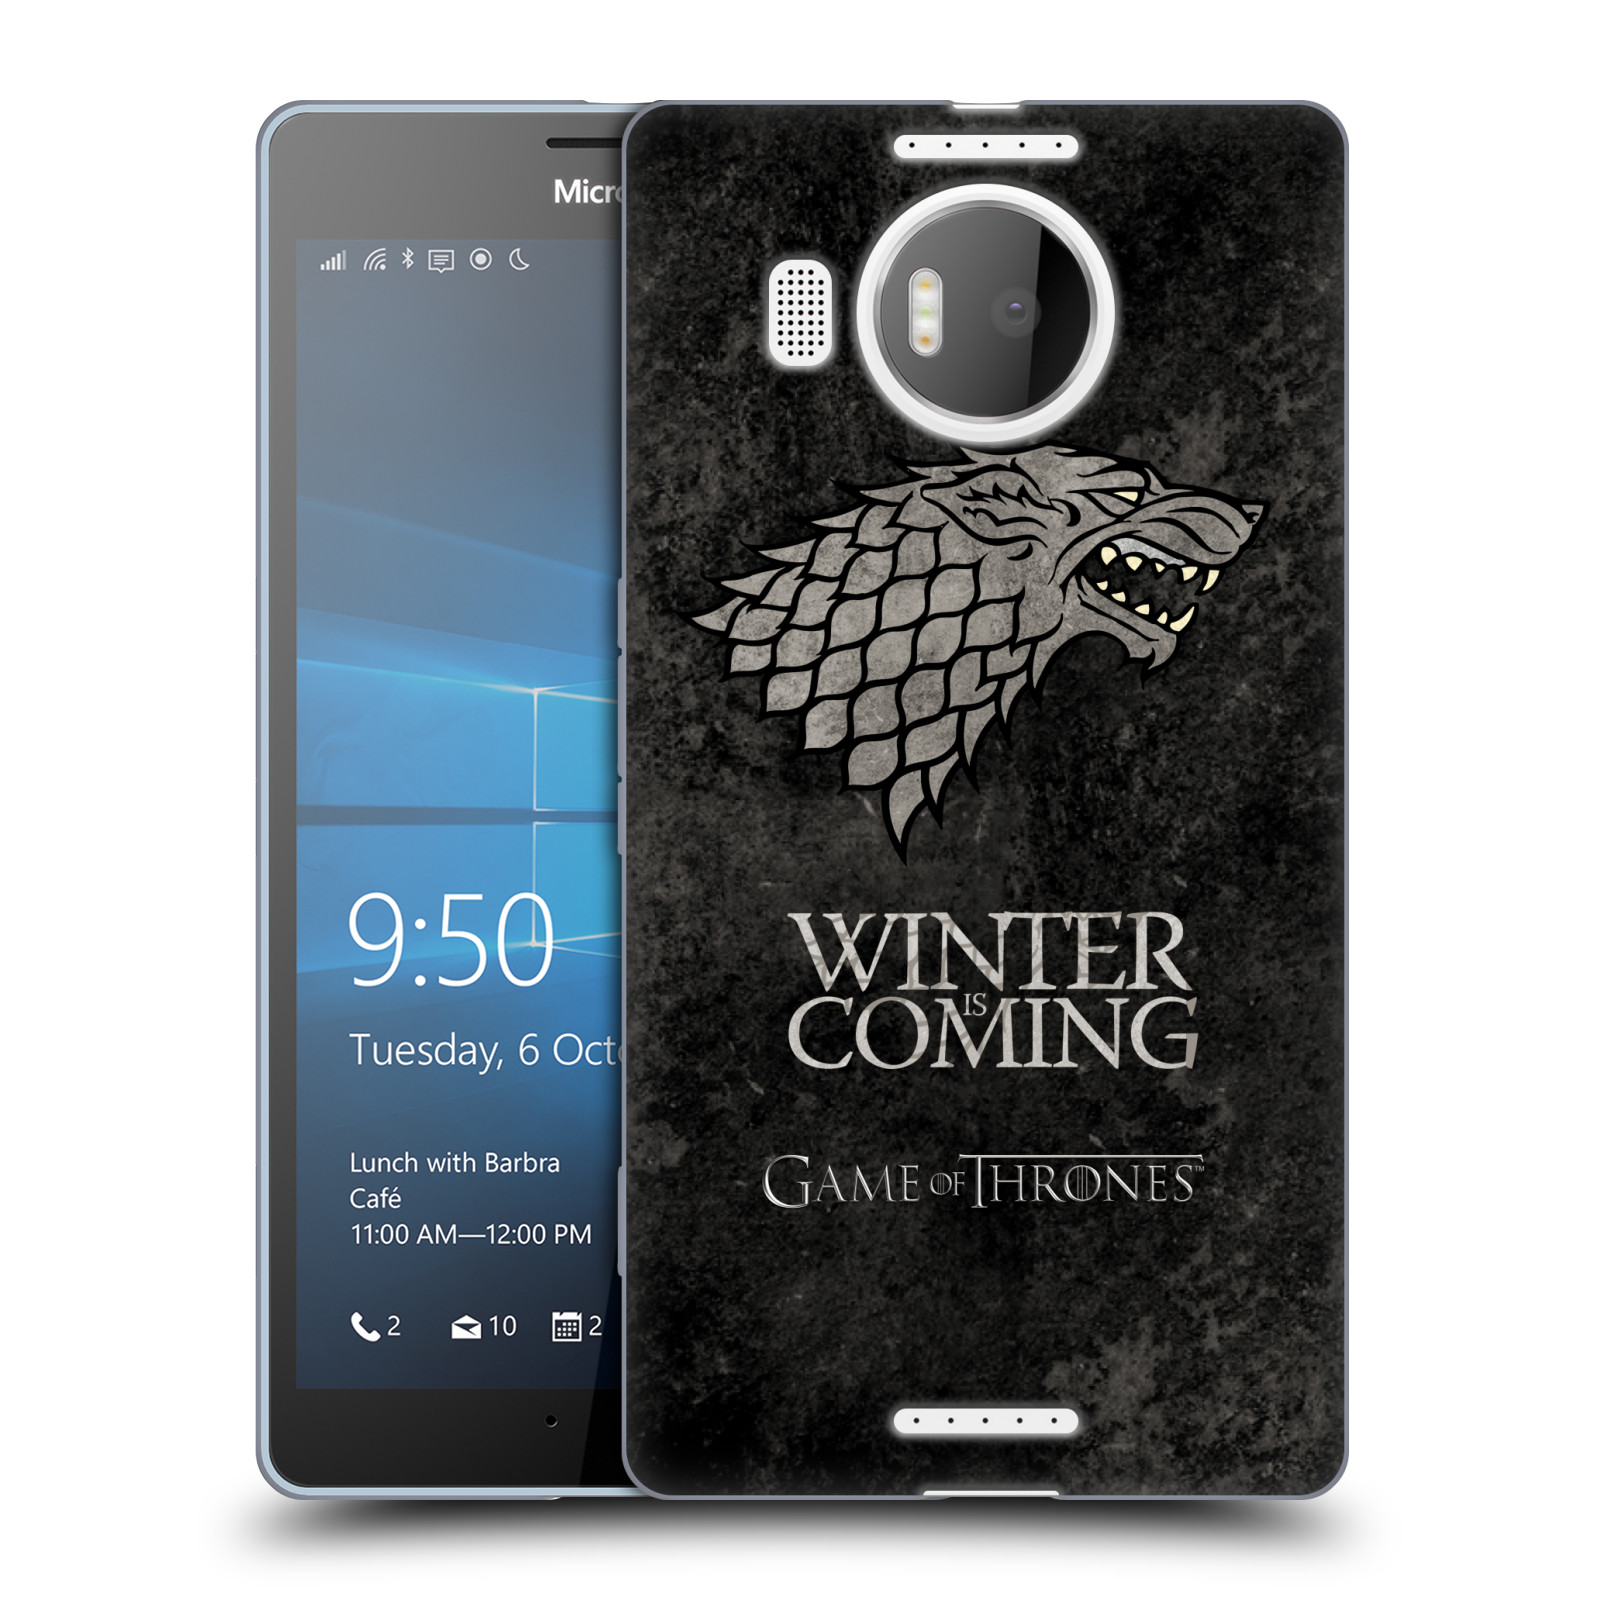 Silikonové pouzdro na mobil Microsoft Lumia 950 XL HEAD CASE Hra o trůny - Stark - Winter is coming